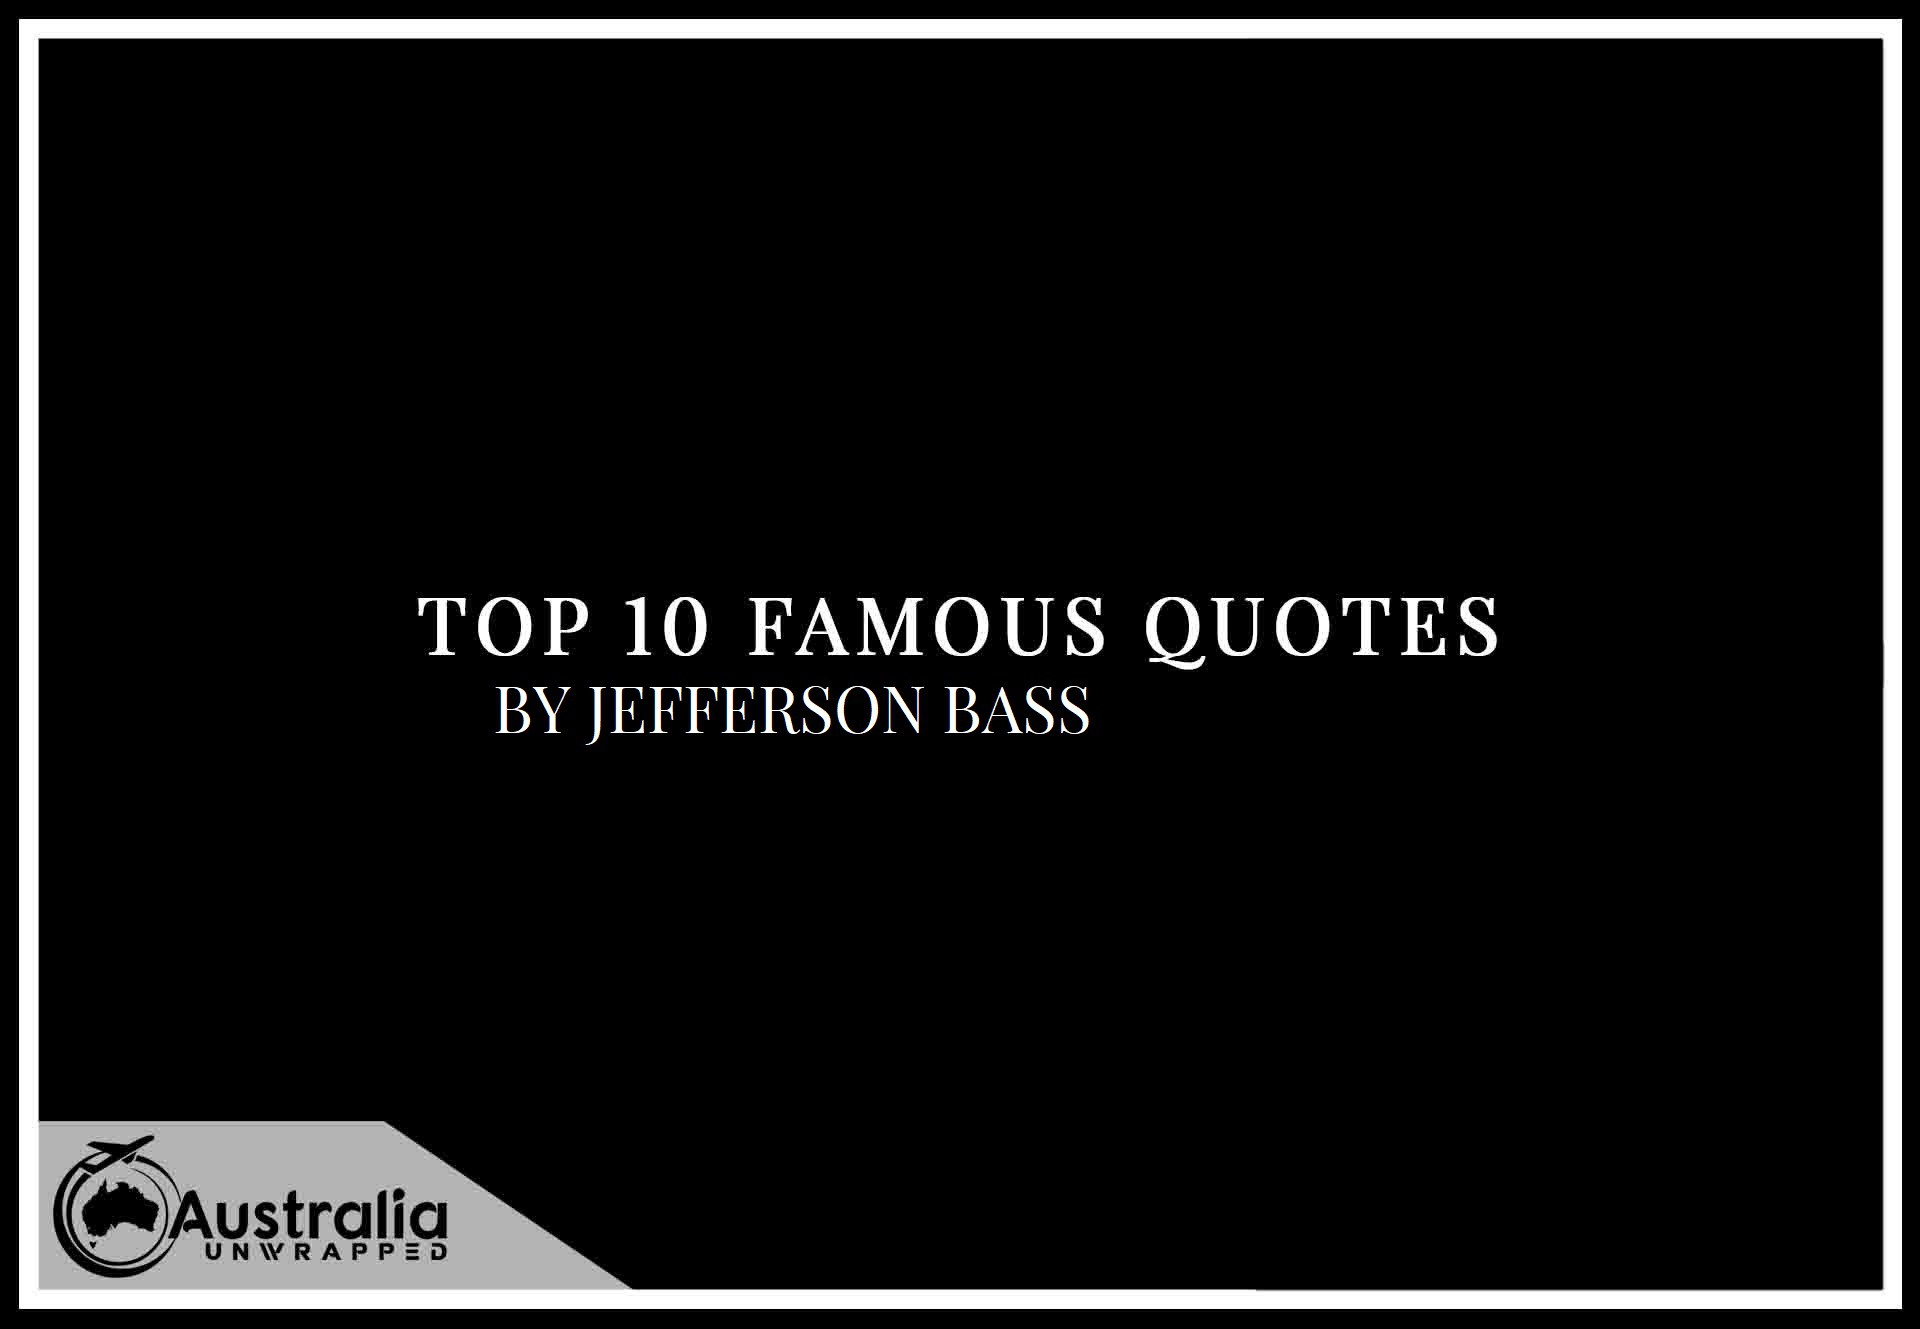 Top 10 Famous Quotes by Author Jefferson Bass